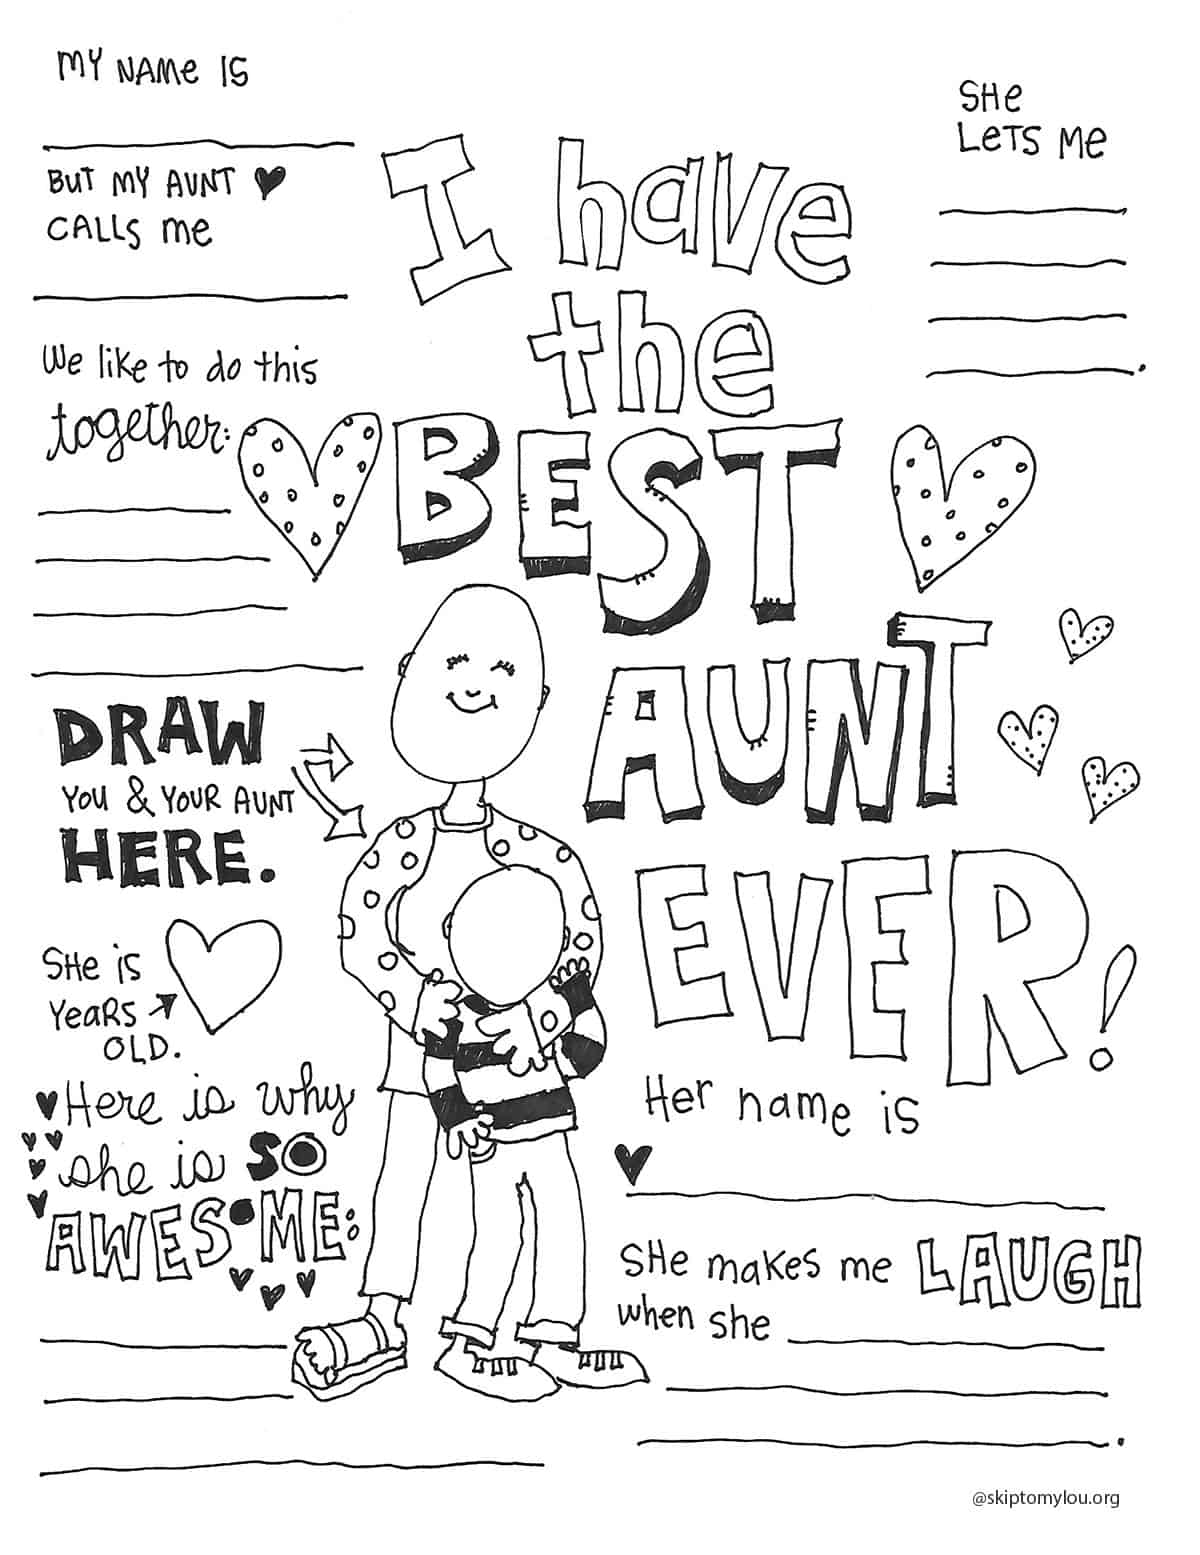 The BEST Aunt Coloring Page | Skip To My Lou